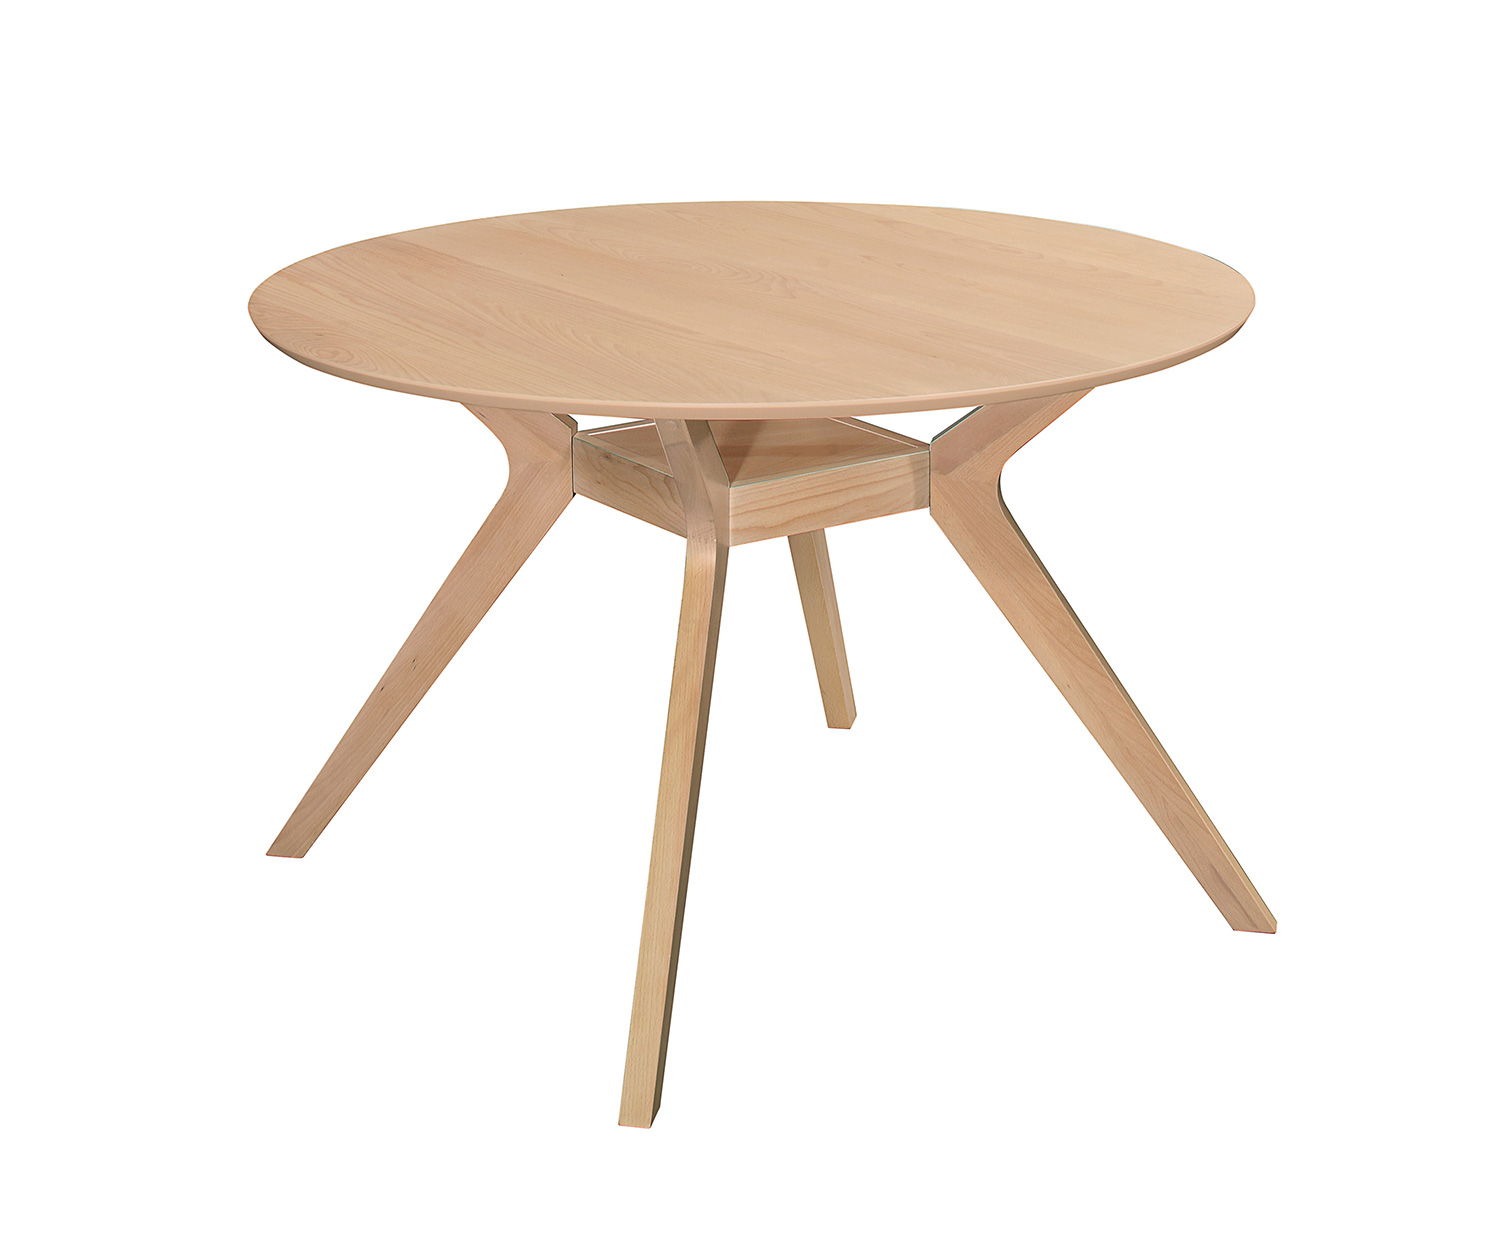 Homelegance Hamar Round Dining Table - Natural